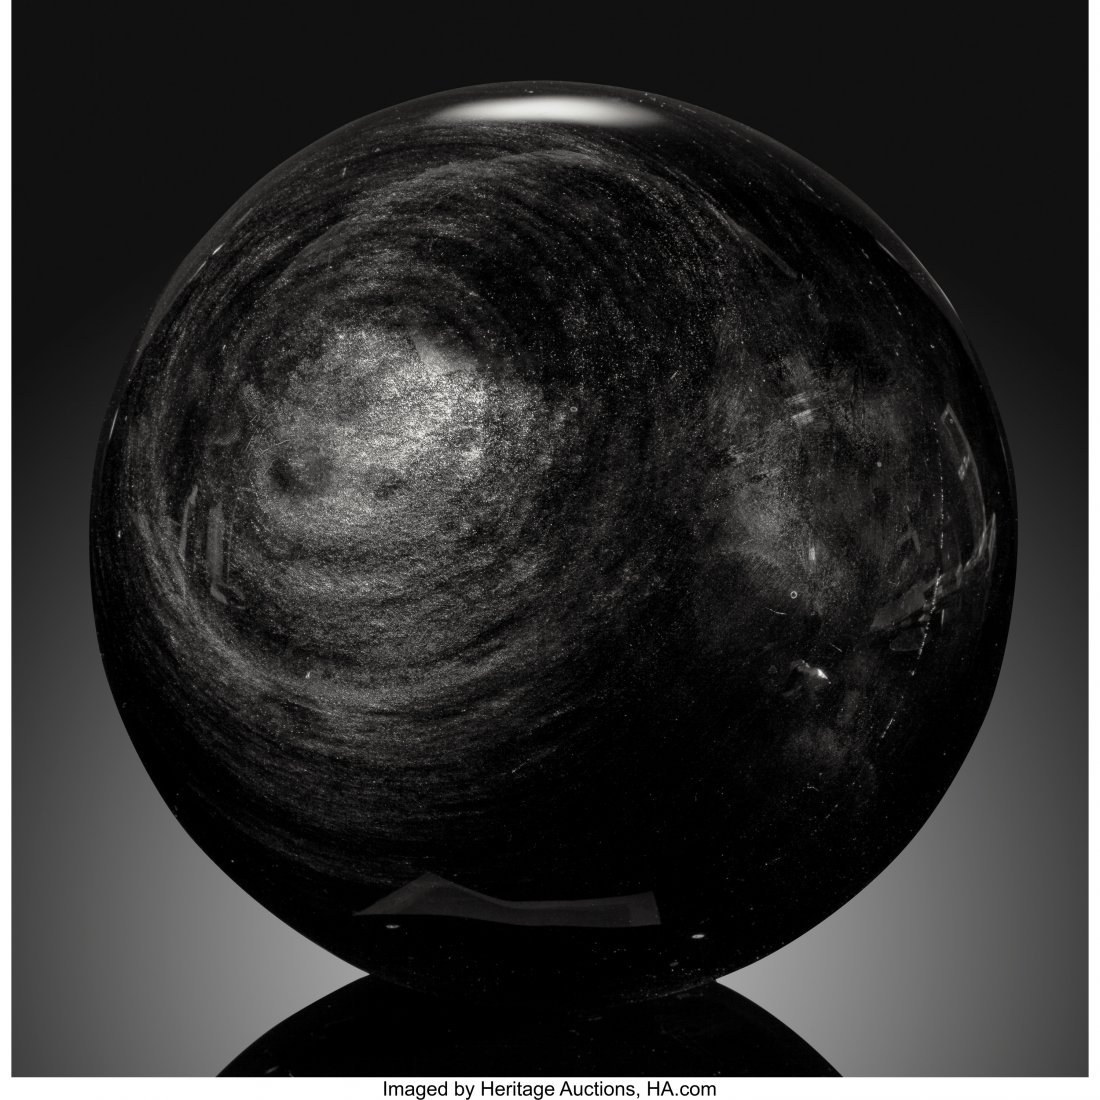 72083: Obsidian Sphere Stone Source: Mexico   This larg